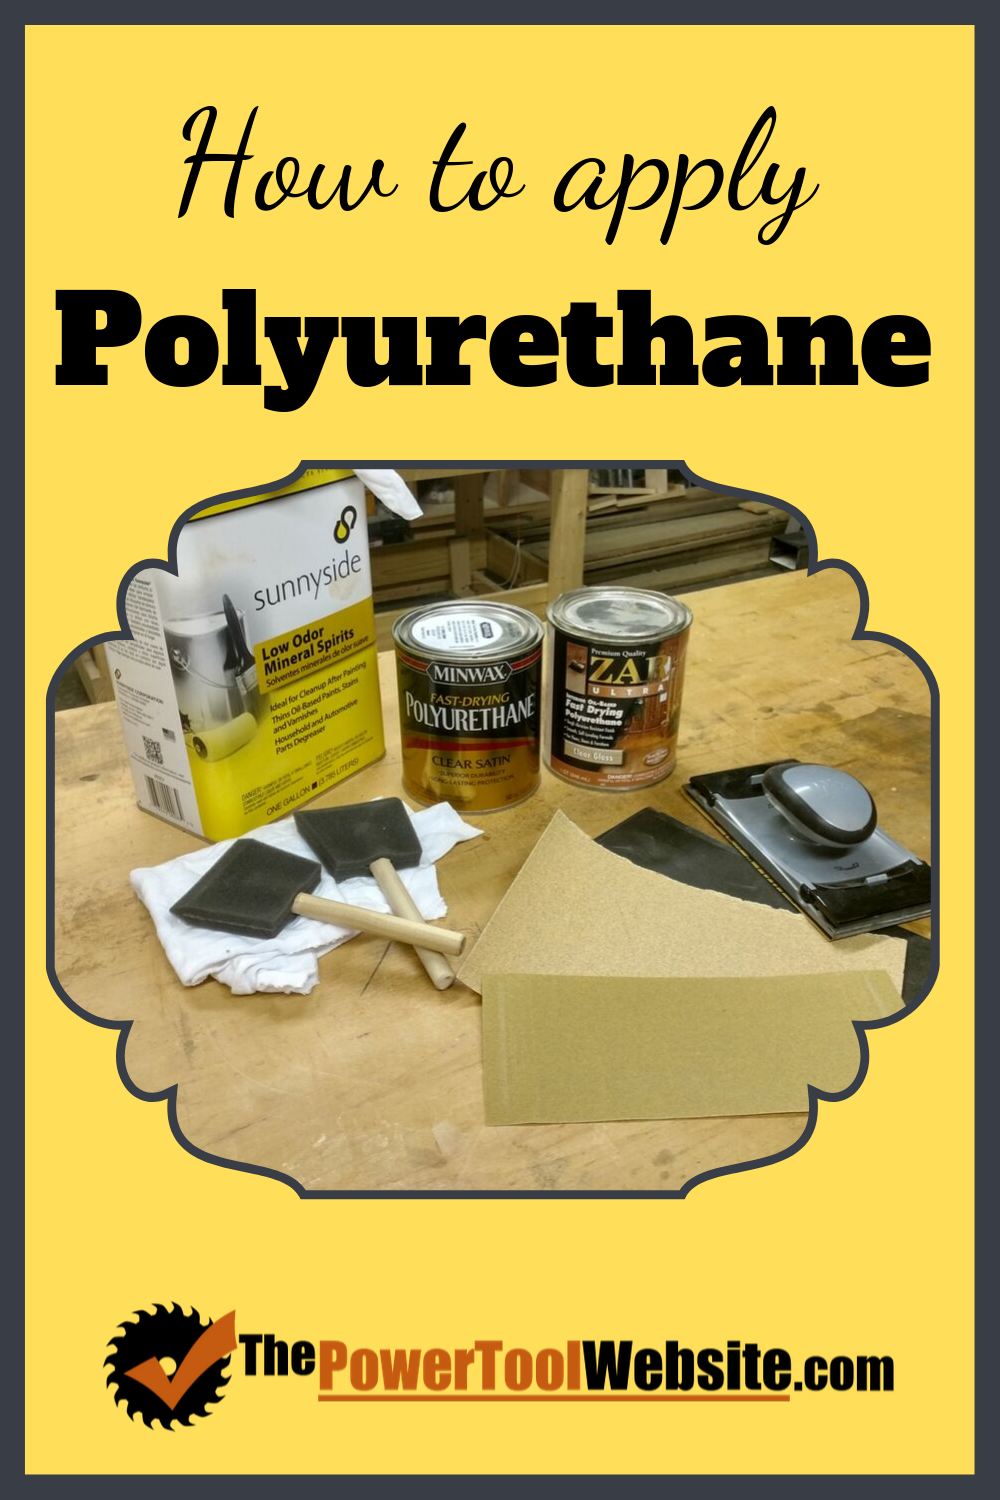 How To Apply Polyurethane 4 Easy Steps To A Great Finish How To Apply Polyurethane Fine Woodworking Project Easy Woodworking Projects